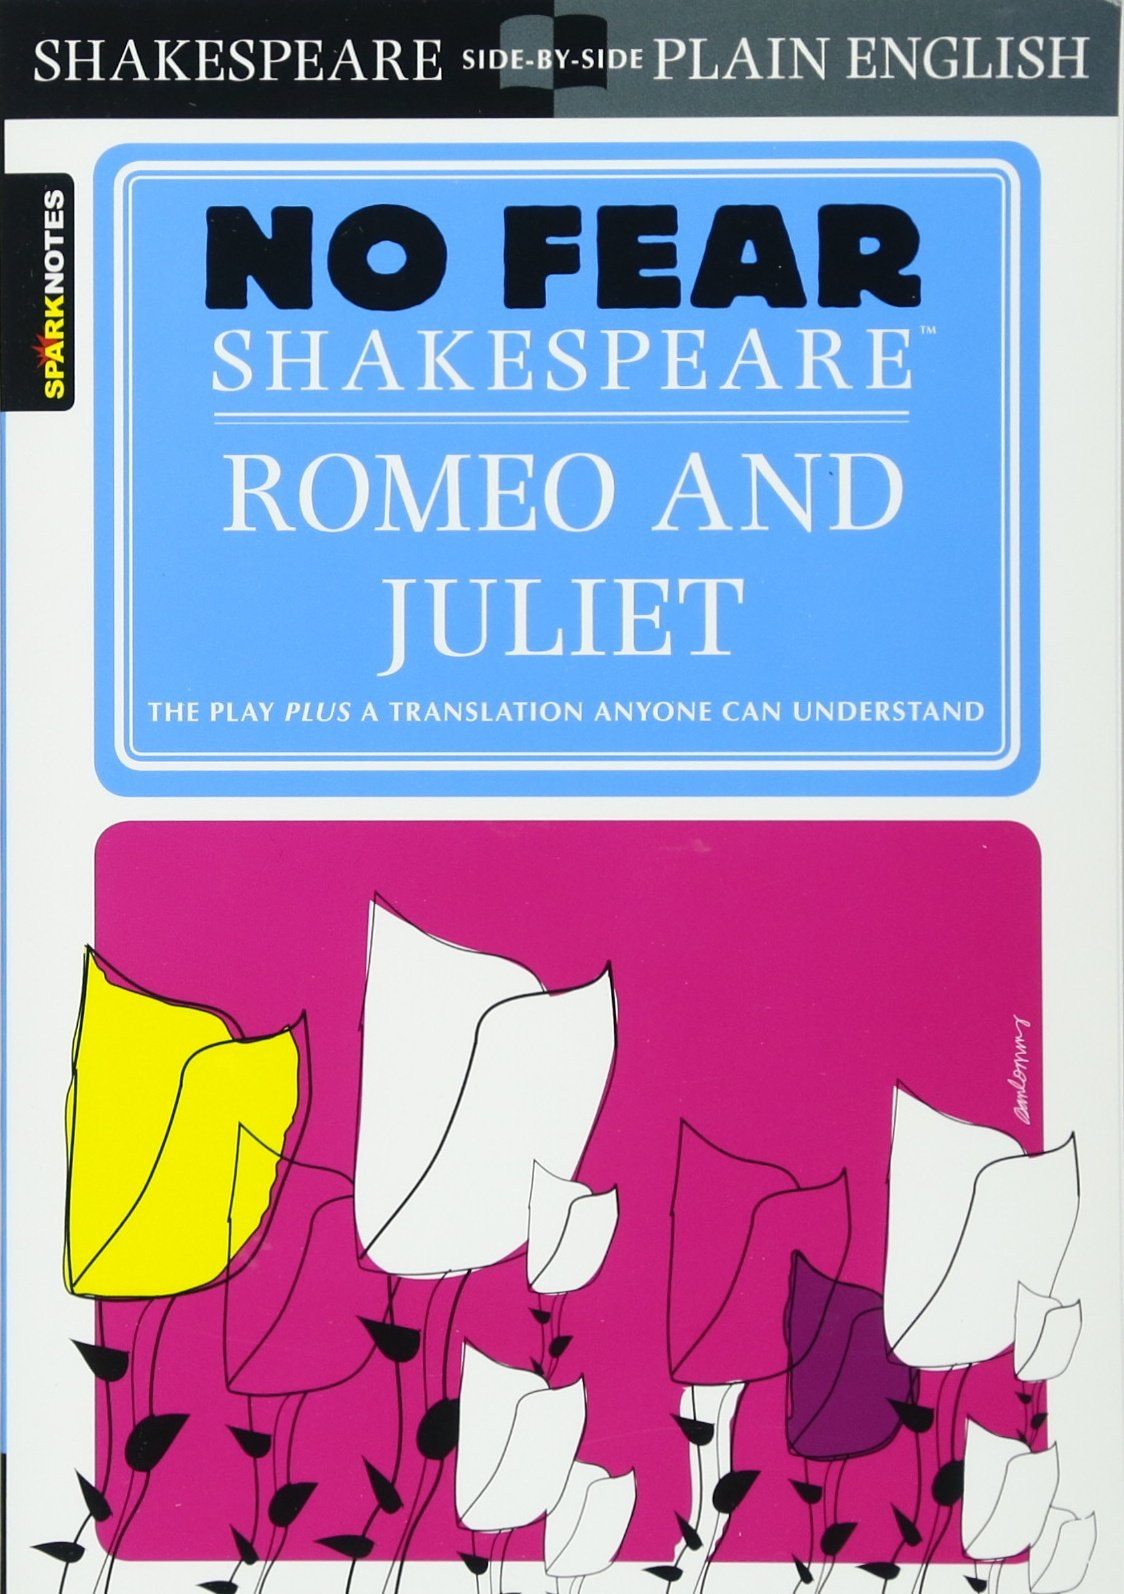 no heir in romeo and juliet Read act 4, scene 5 of shakespeare's romeo and juliet, side-by-side with a  translation into  what, not a word  death is my son-in-law death is my heir.